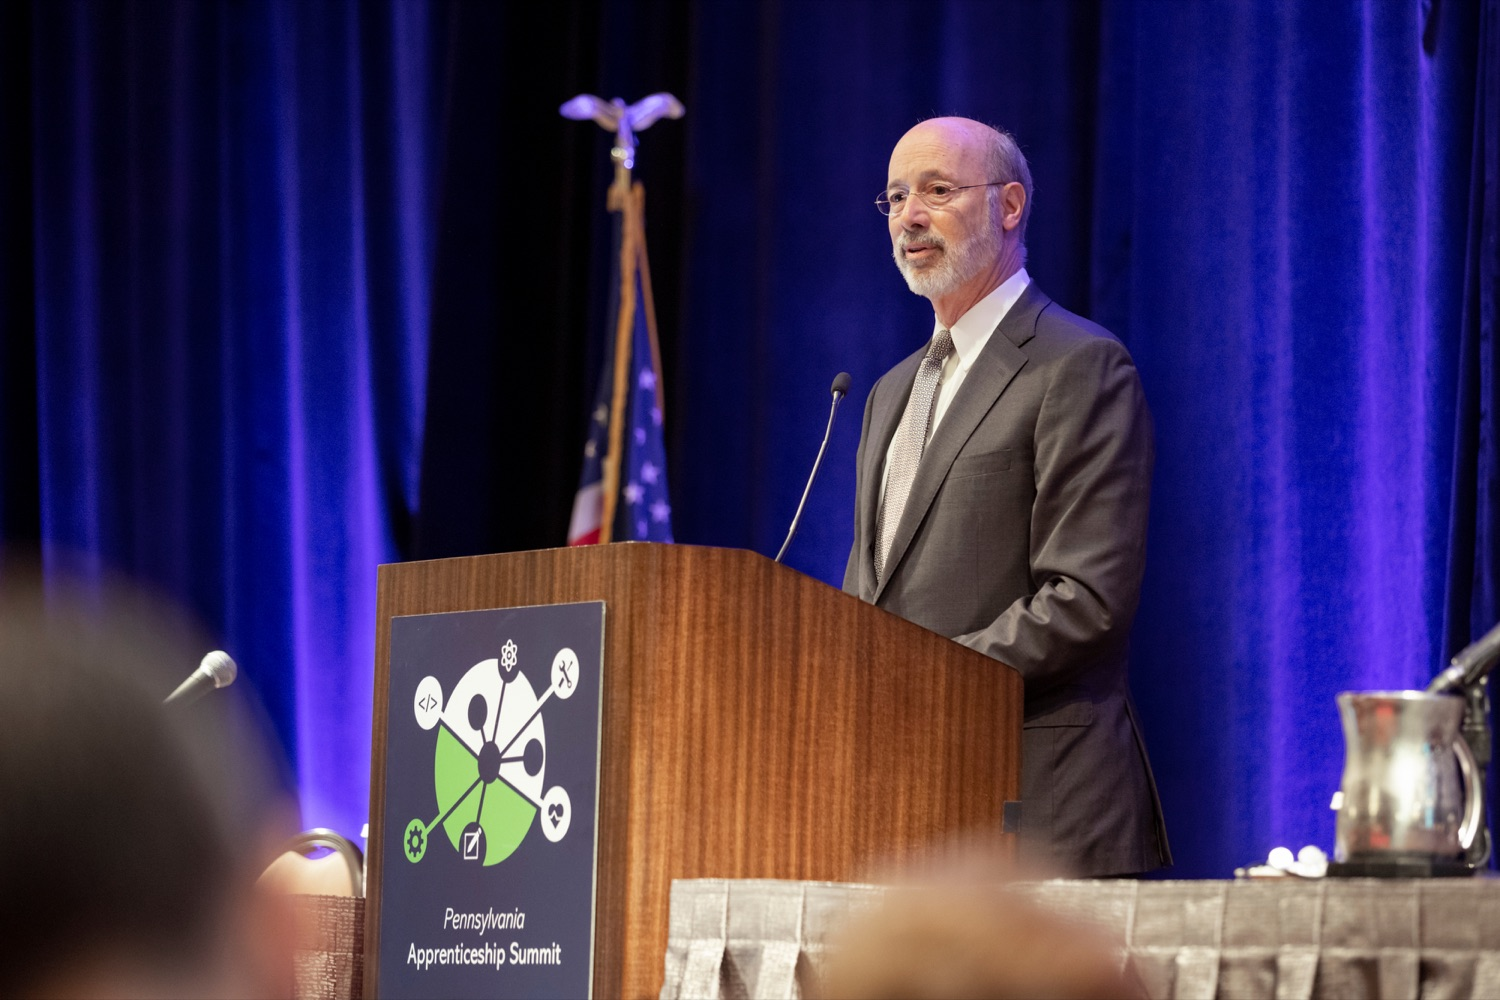 "<a href=""http://filesource.abacast.com/commonwealthofpa/photo/17520_LandI_Apprenticeships_NK_013.JPG"" target=""_blank"">⇣ Download Photo<br></a>Pennsylvania Governor Tom Wolf speaks during the 2019 Pennsylvania Apprenticeship Summit at Hershey Lodge on Thursday, October 31, 2019."